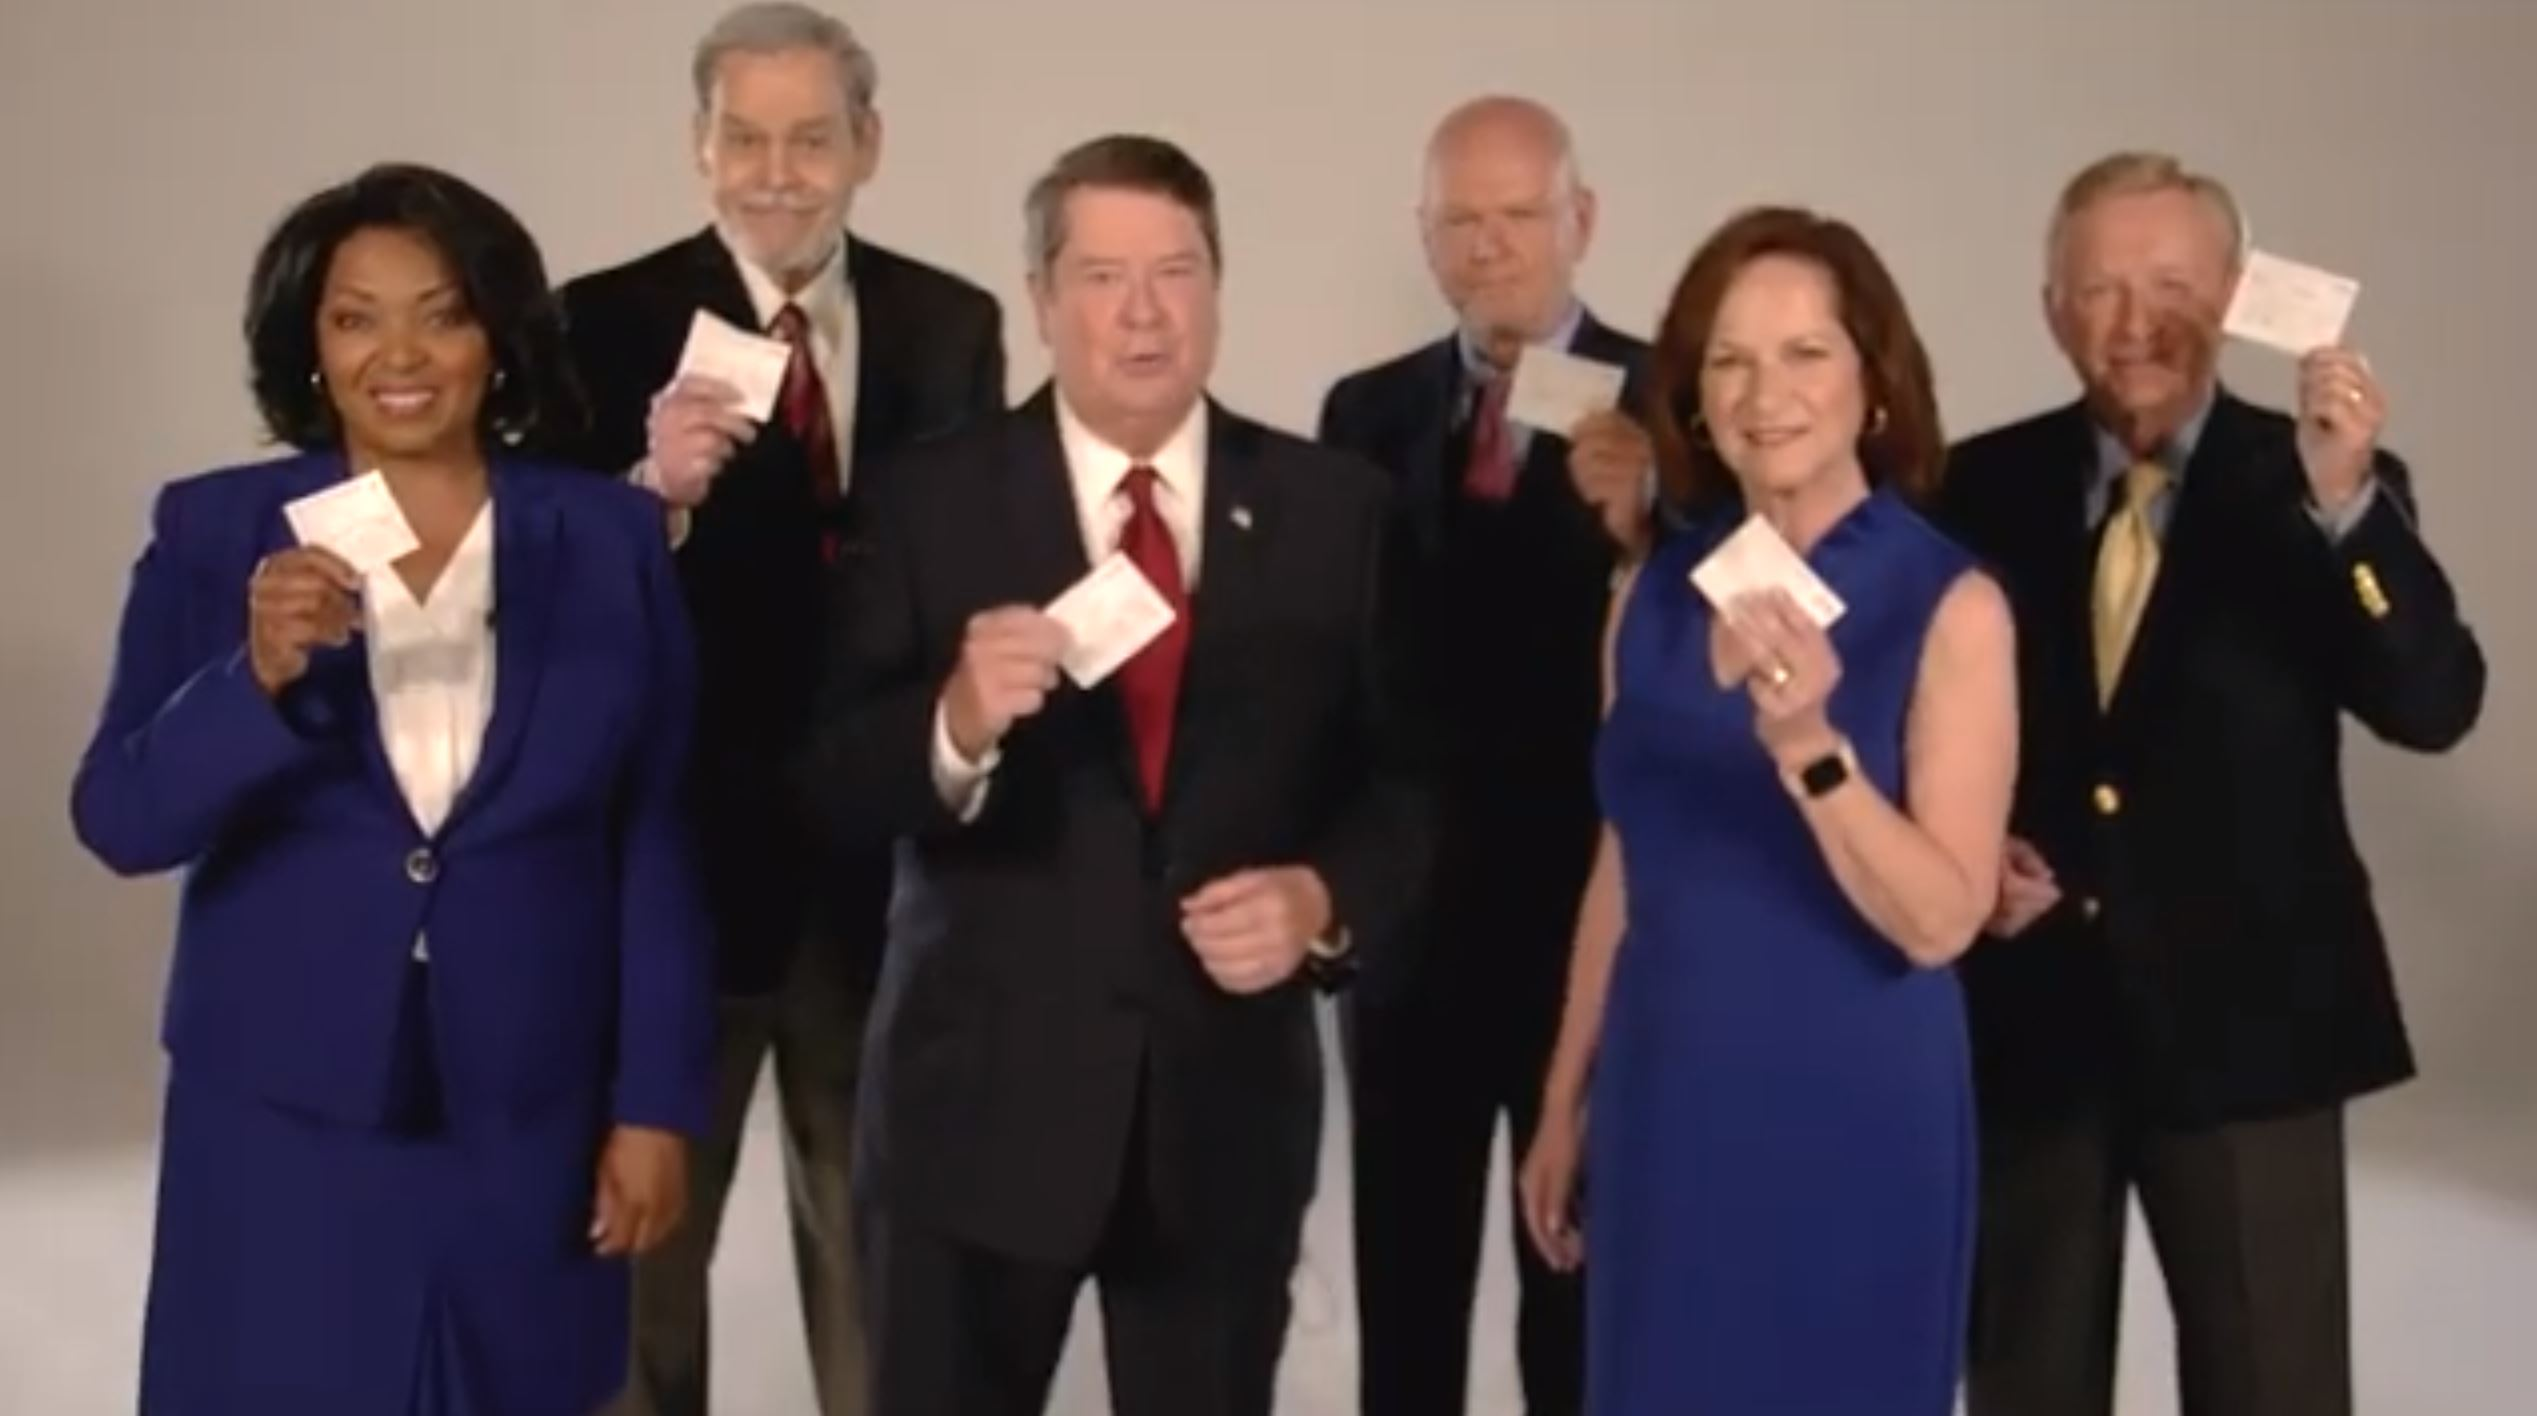 Former local TV anchors appear in PSA for COVID vaccinations